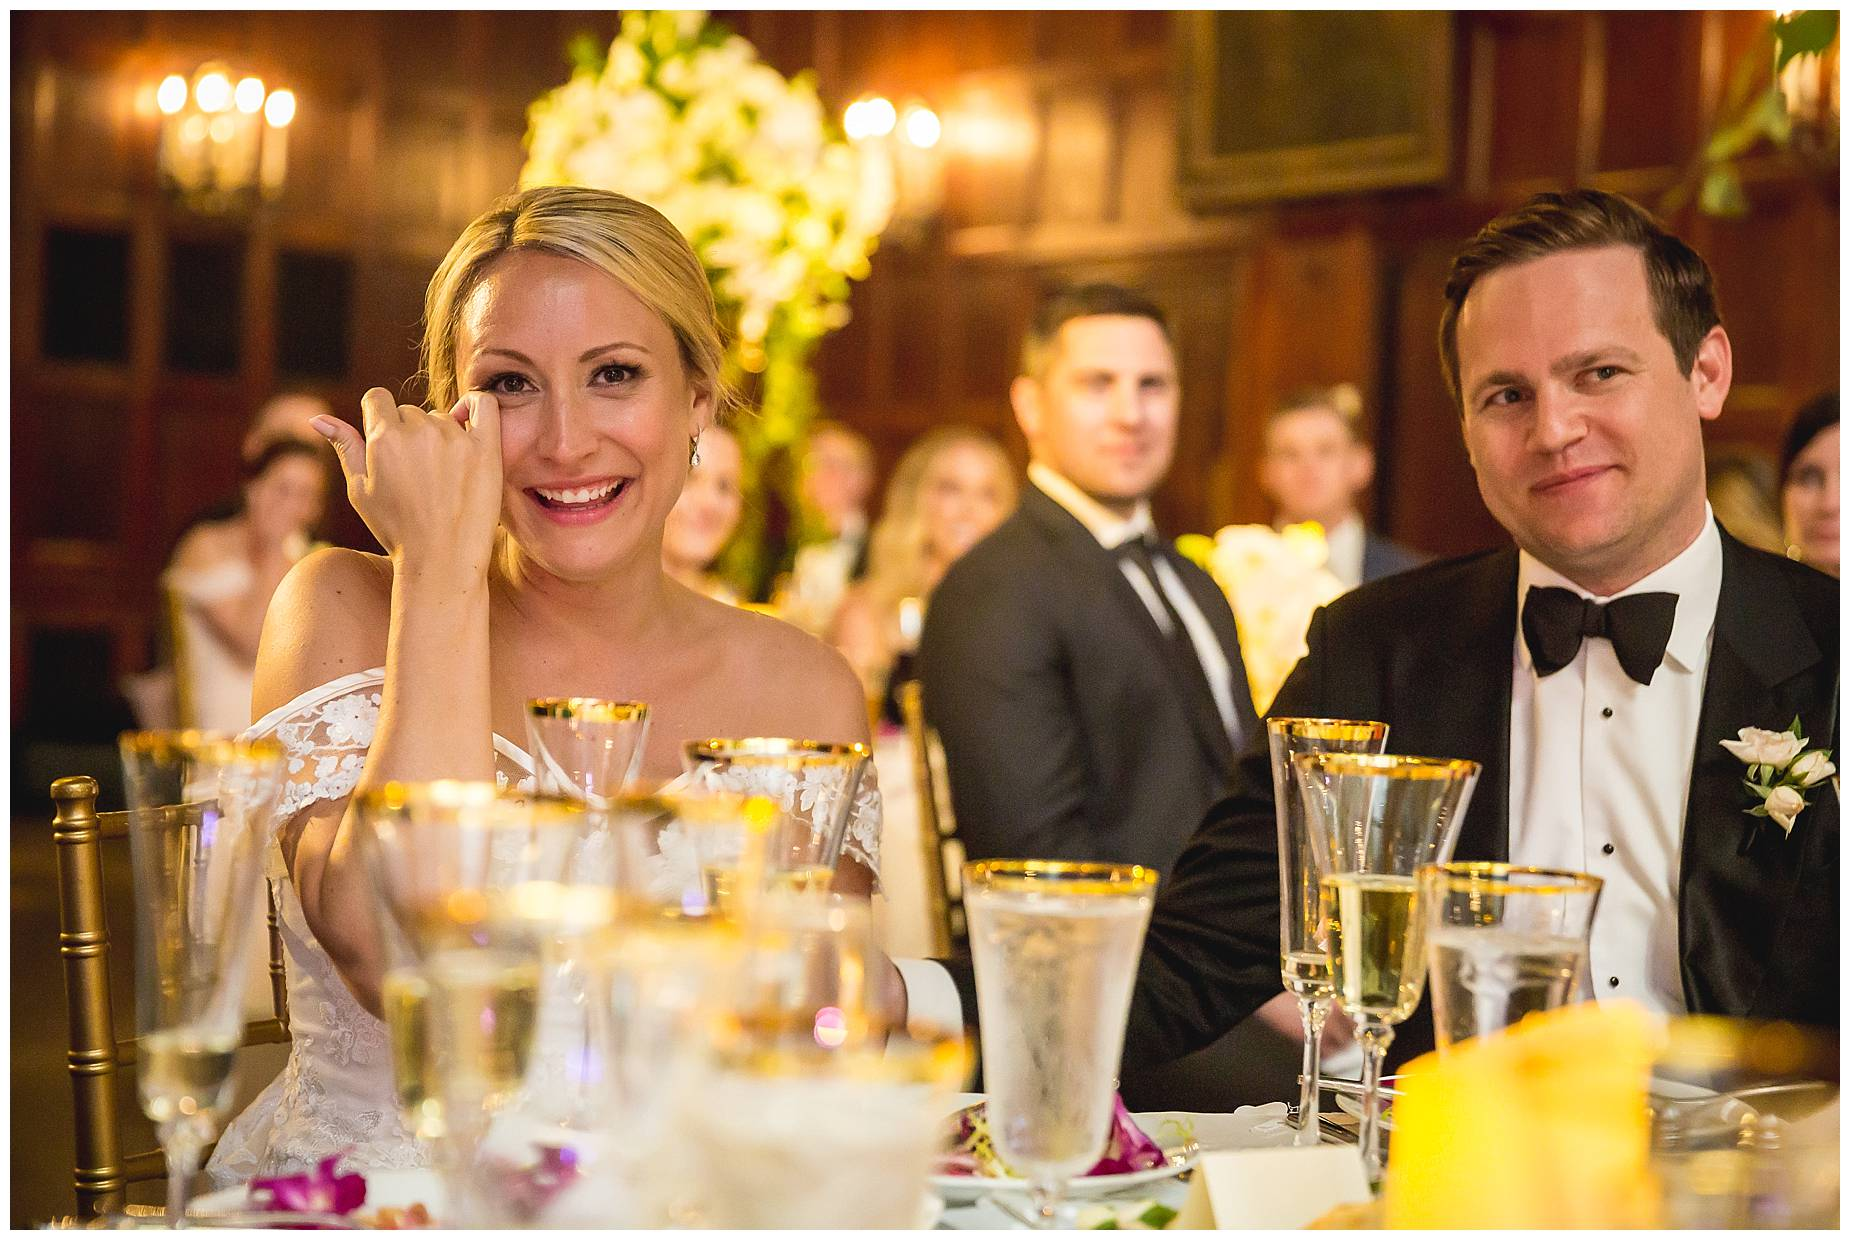 Harvard Club Wedding speeches